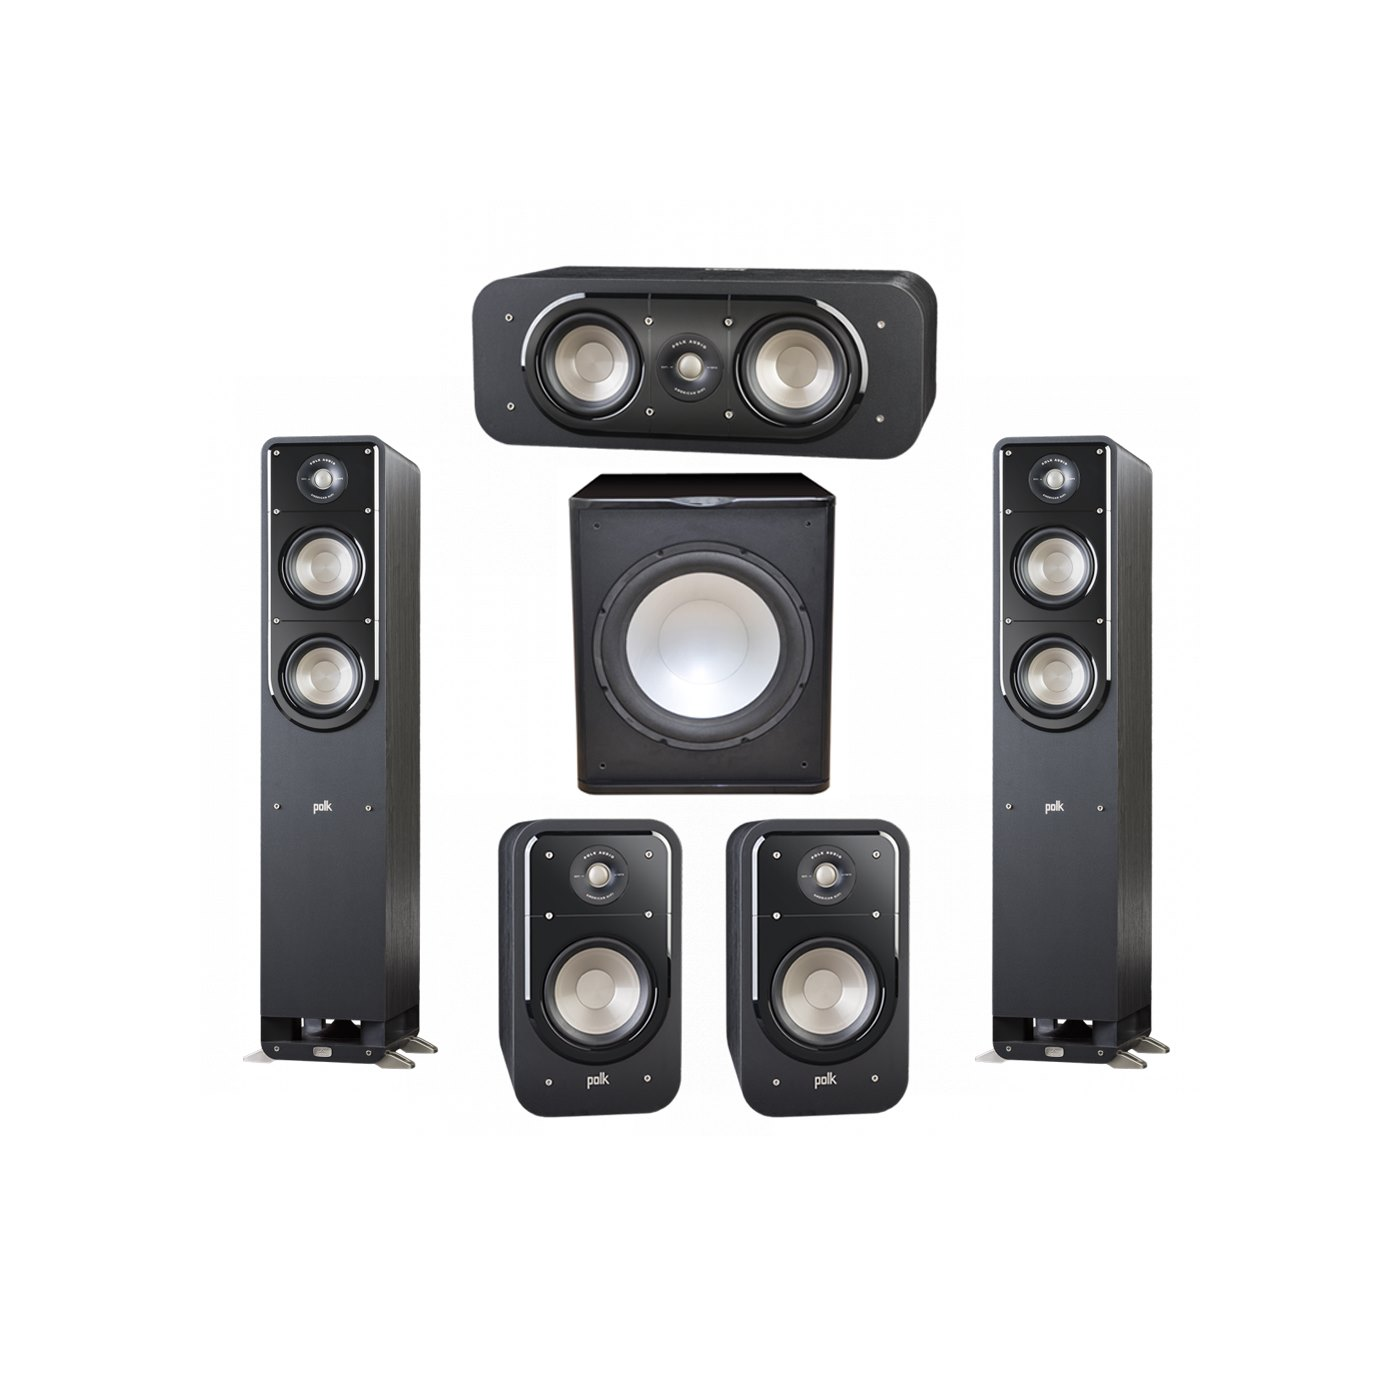 Polk Audio Signature 5.1 System with 2 S50 Tower Speaker, 1 Polk S30 Center Speaker, 2 Polk S20 Bookshelf Speaker, 1 Premier Acoustic PA-150 Powered Subwoofer